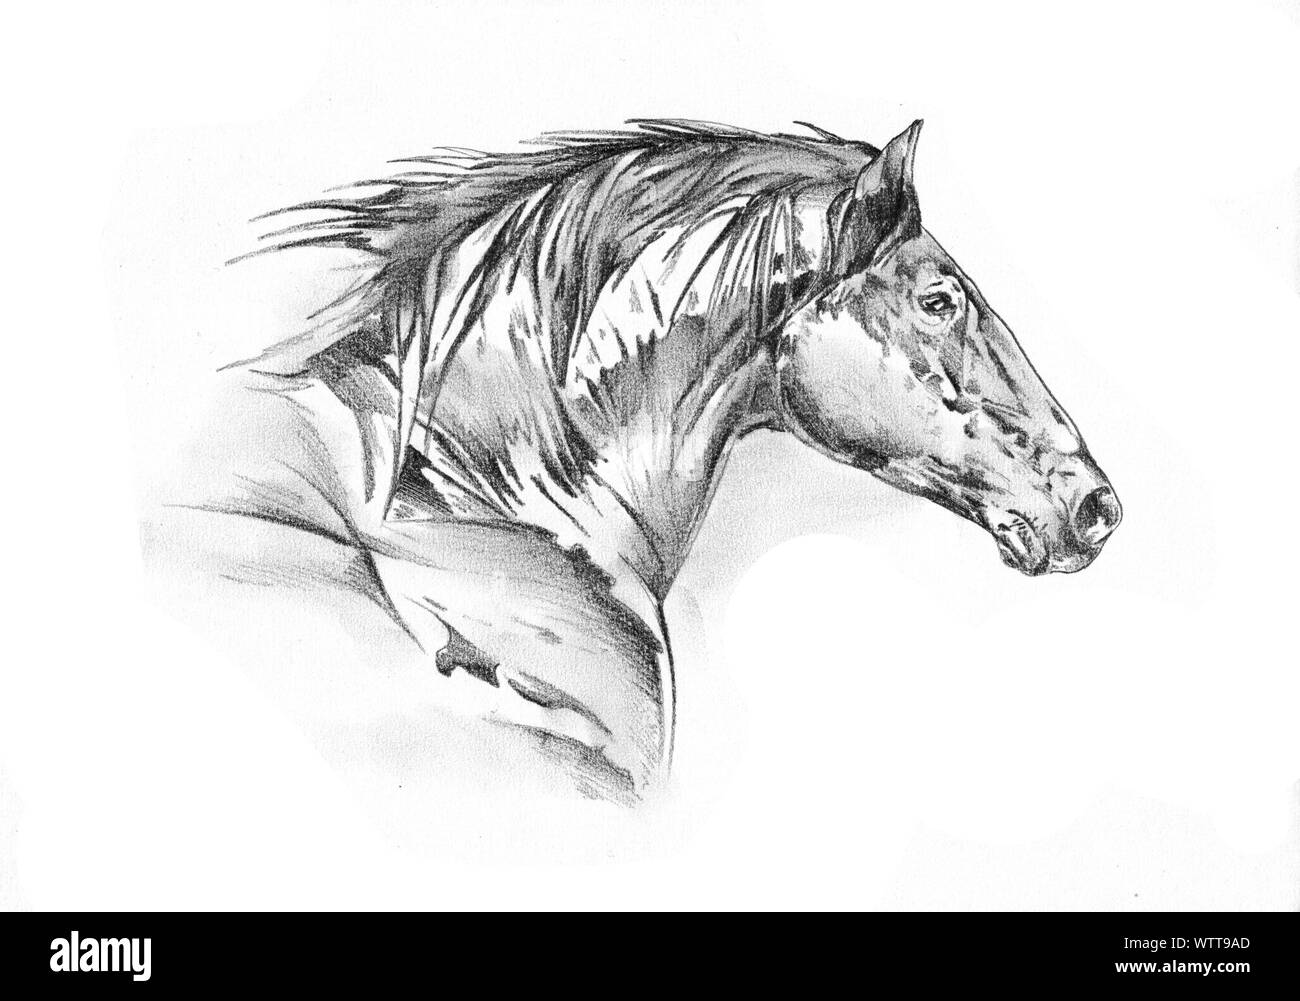 Freehand Horse Head Pencil Drawing Stock Photo Alamy